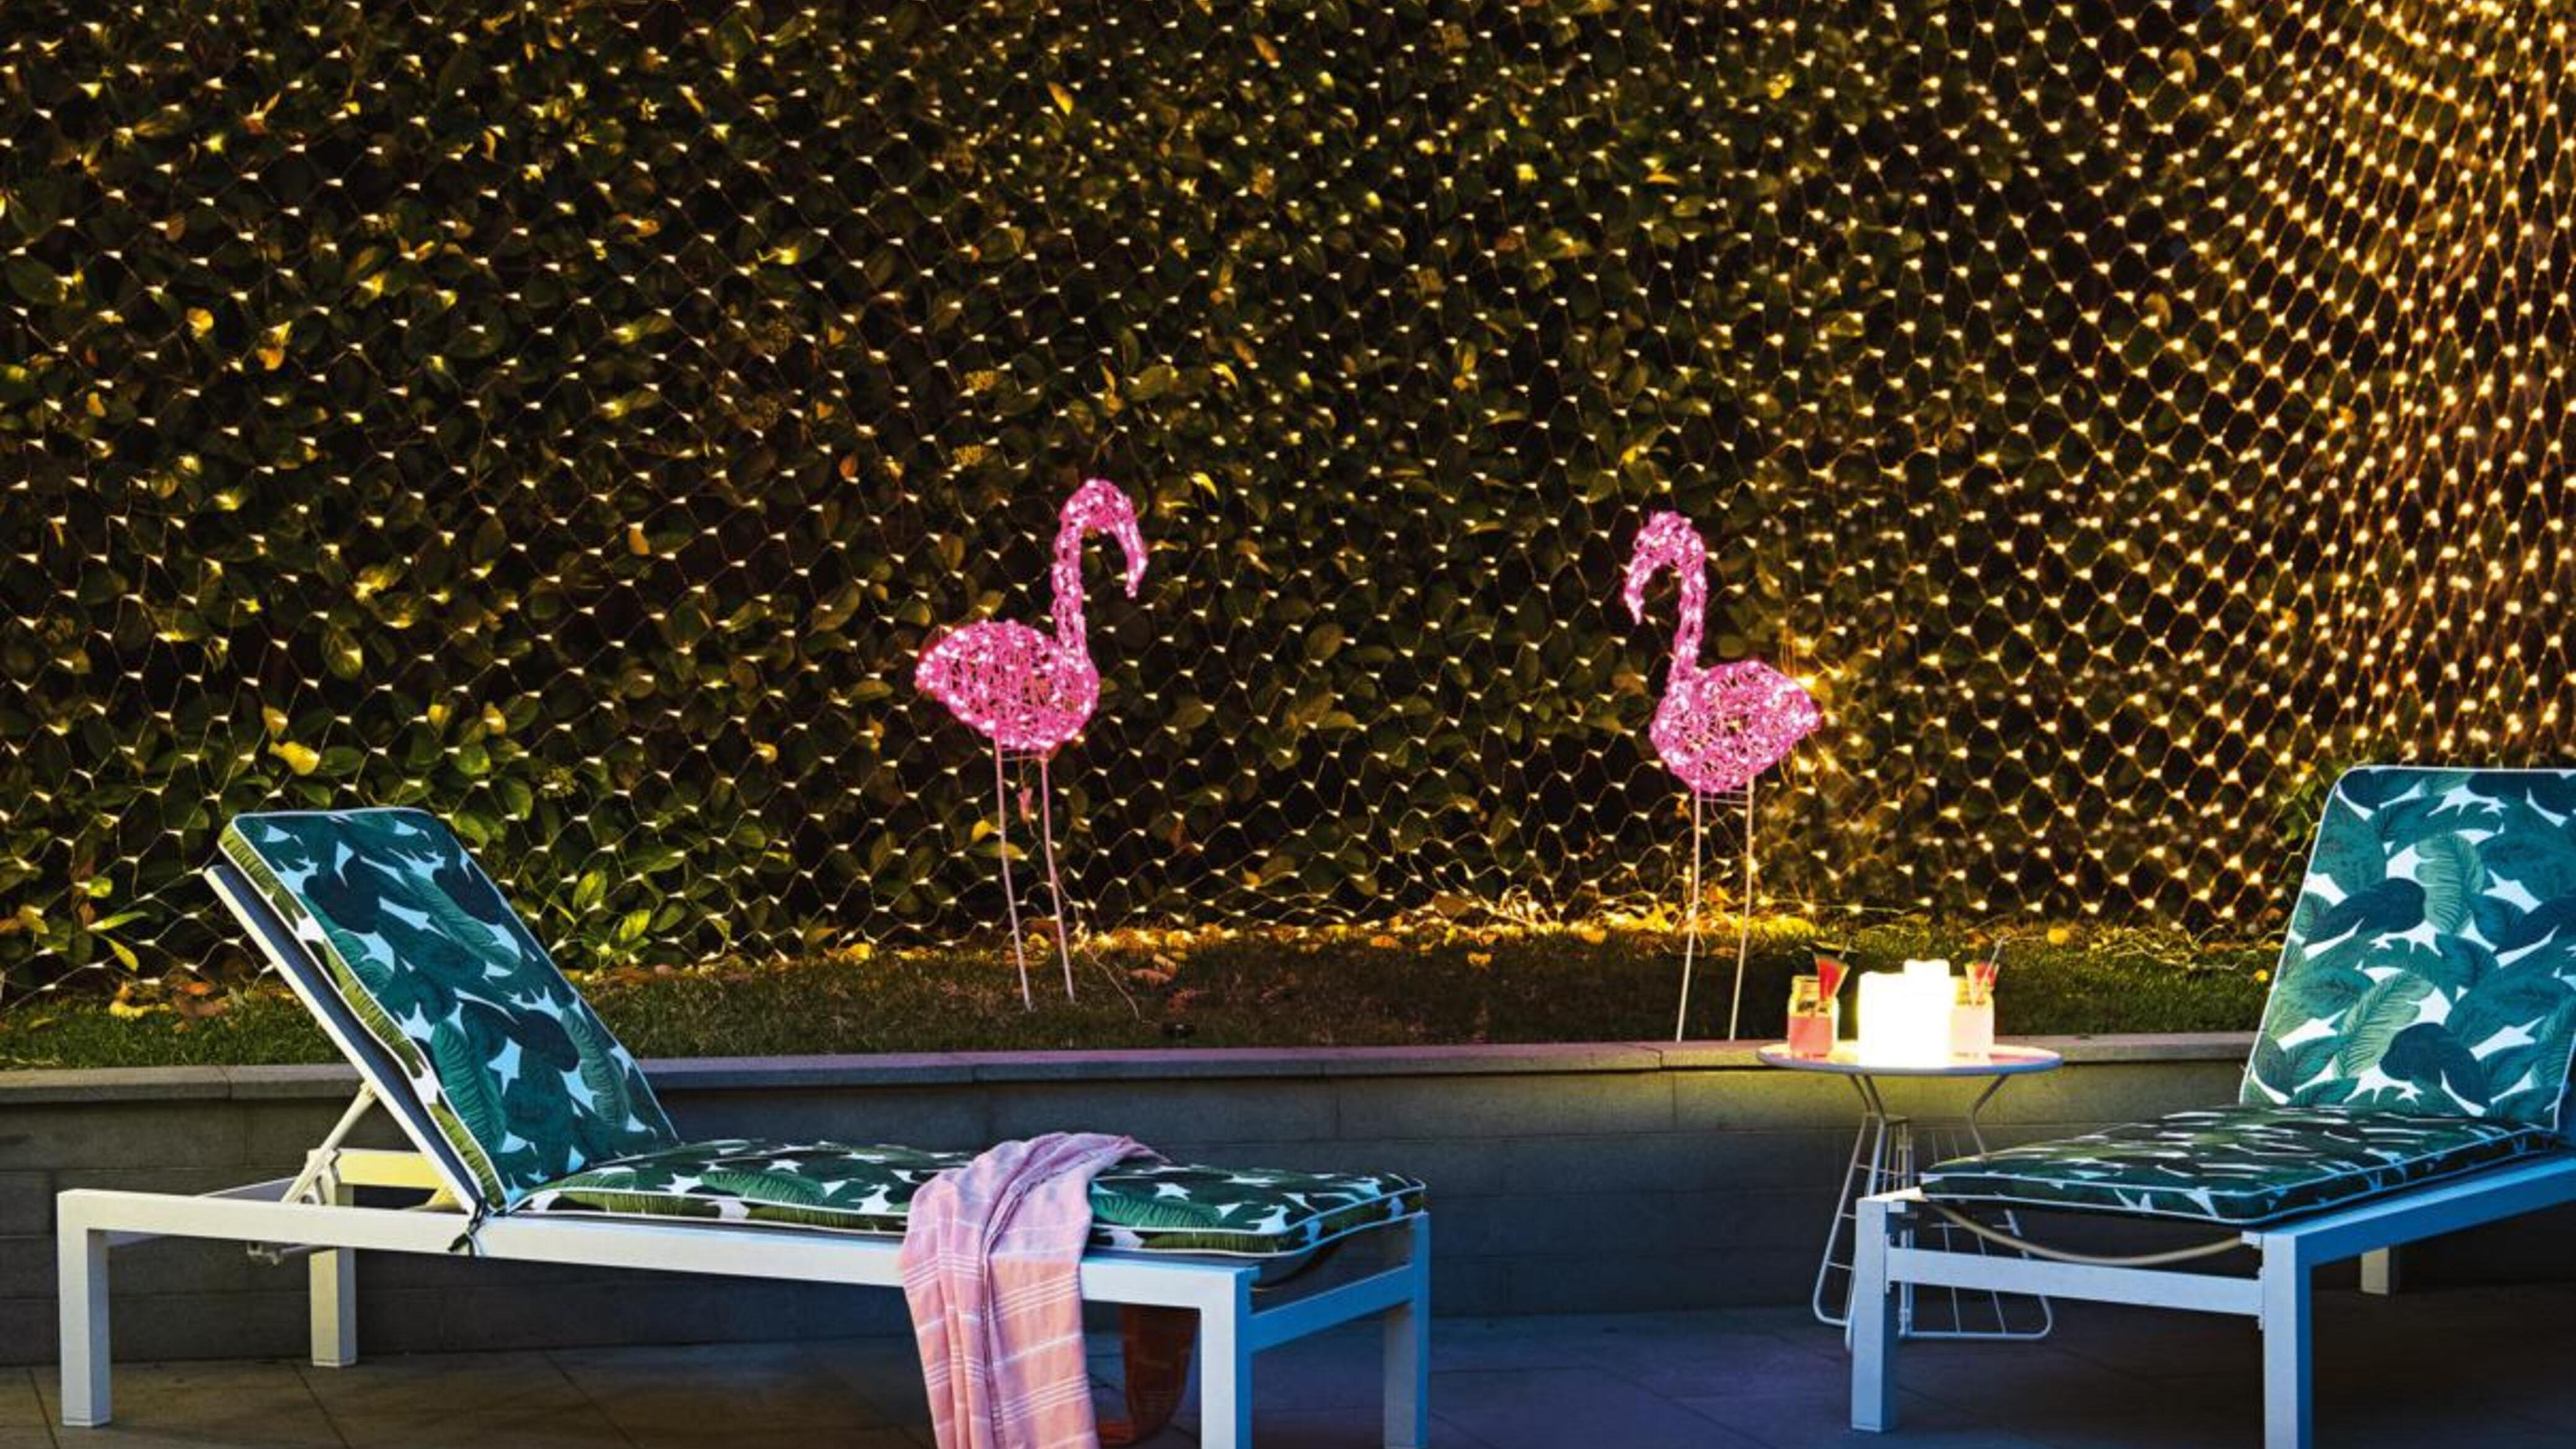 Wall of fairy lights, light flamingos and pool lounges.